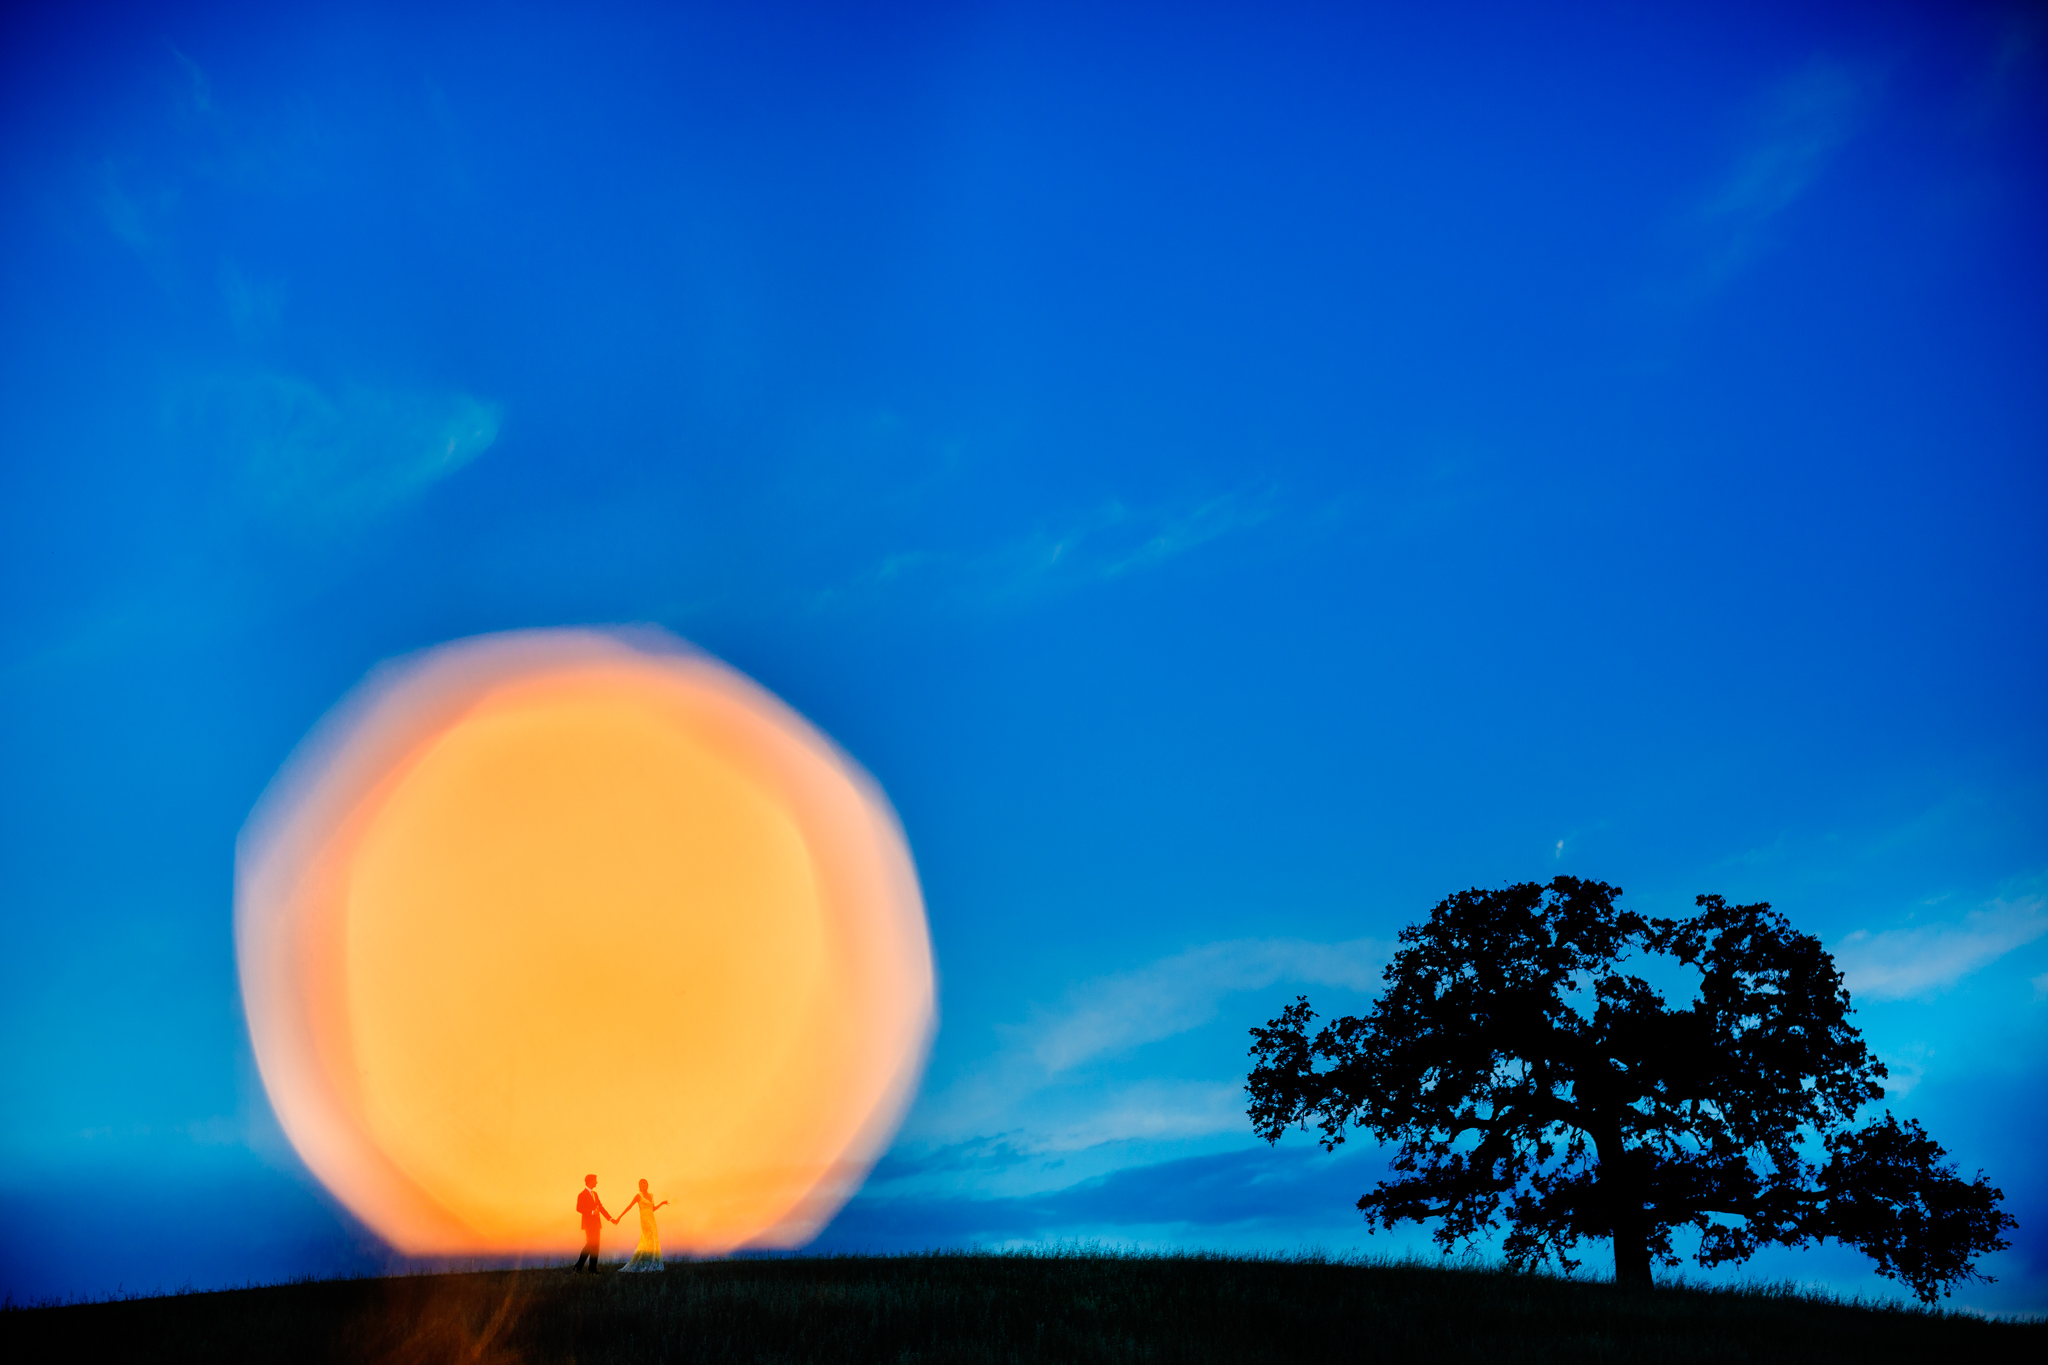 couple in a creative landscape portrait silhouetted- photo by Chrisman Studios